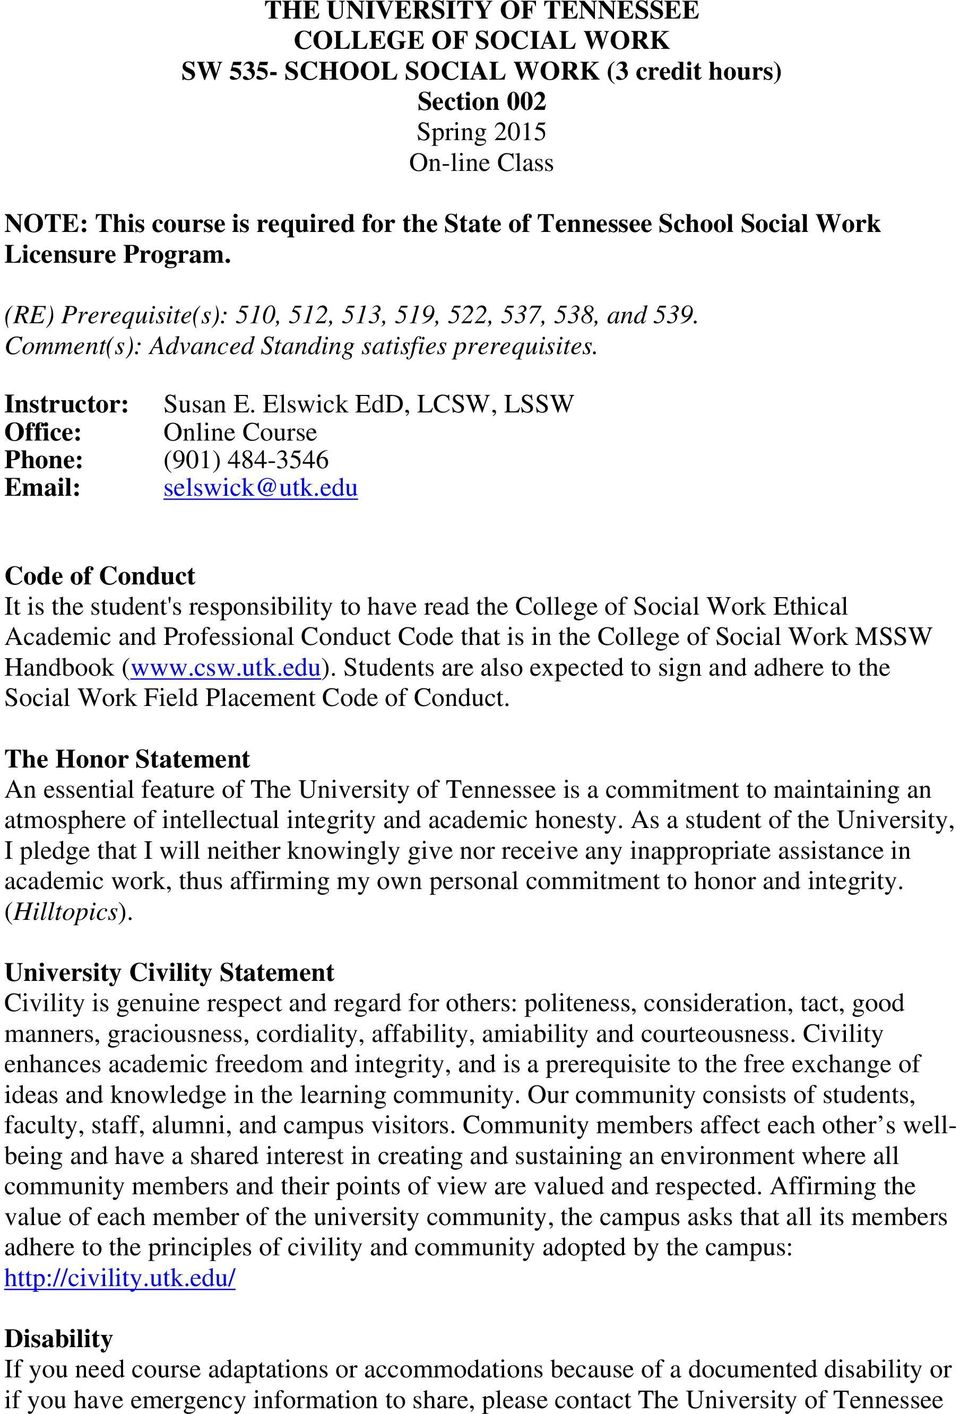 Elswick EdD, LCSW, LSSW Office: Online Course Phone: (901) 484-3546 Email: selswick@utk.